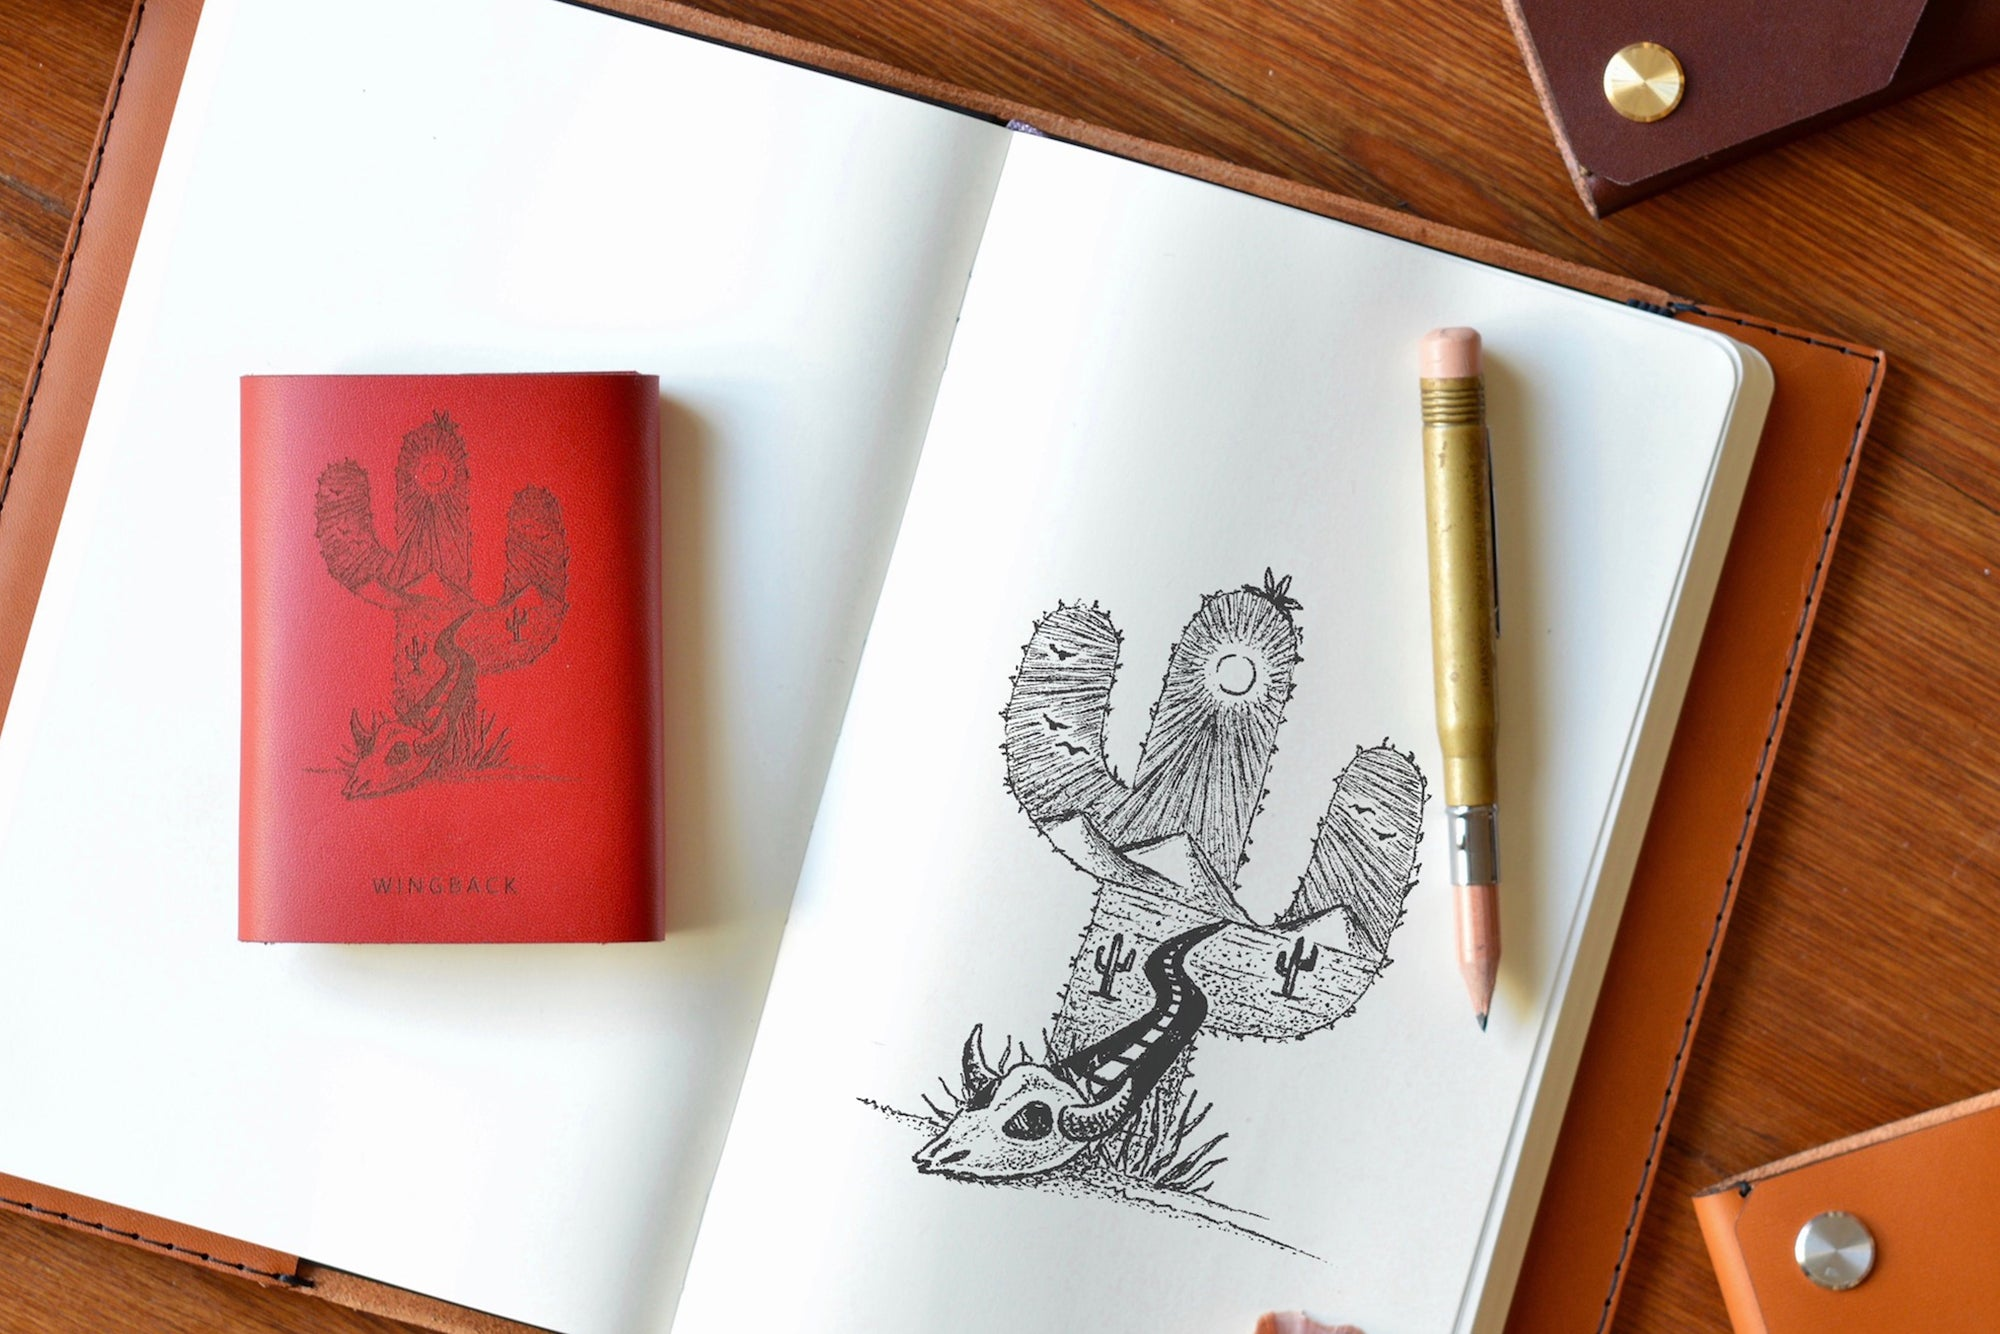 Kim Becker's Saguaro Cactus design for our limited edition collaboration - Wingback